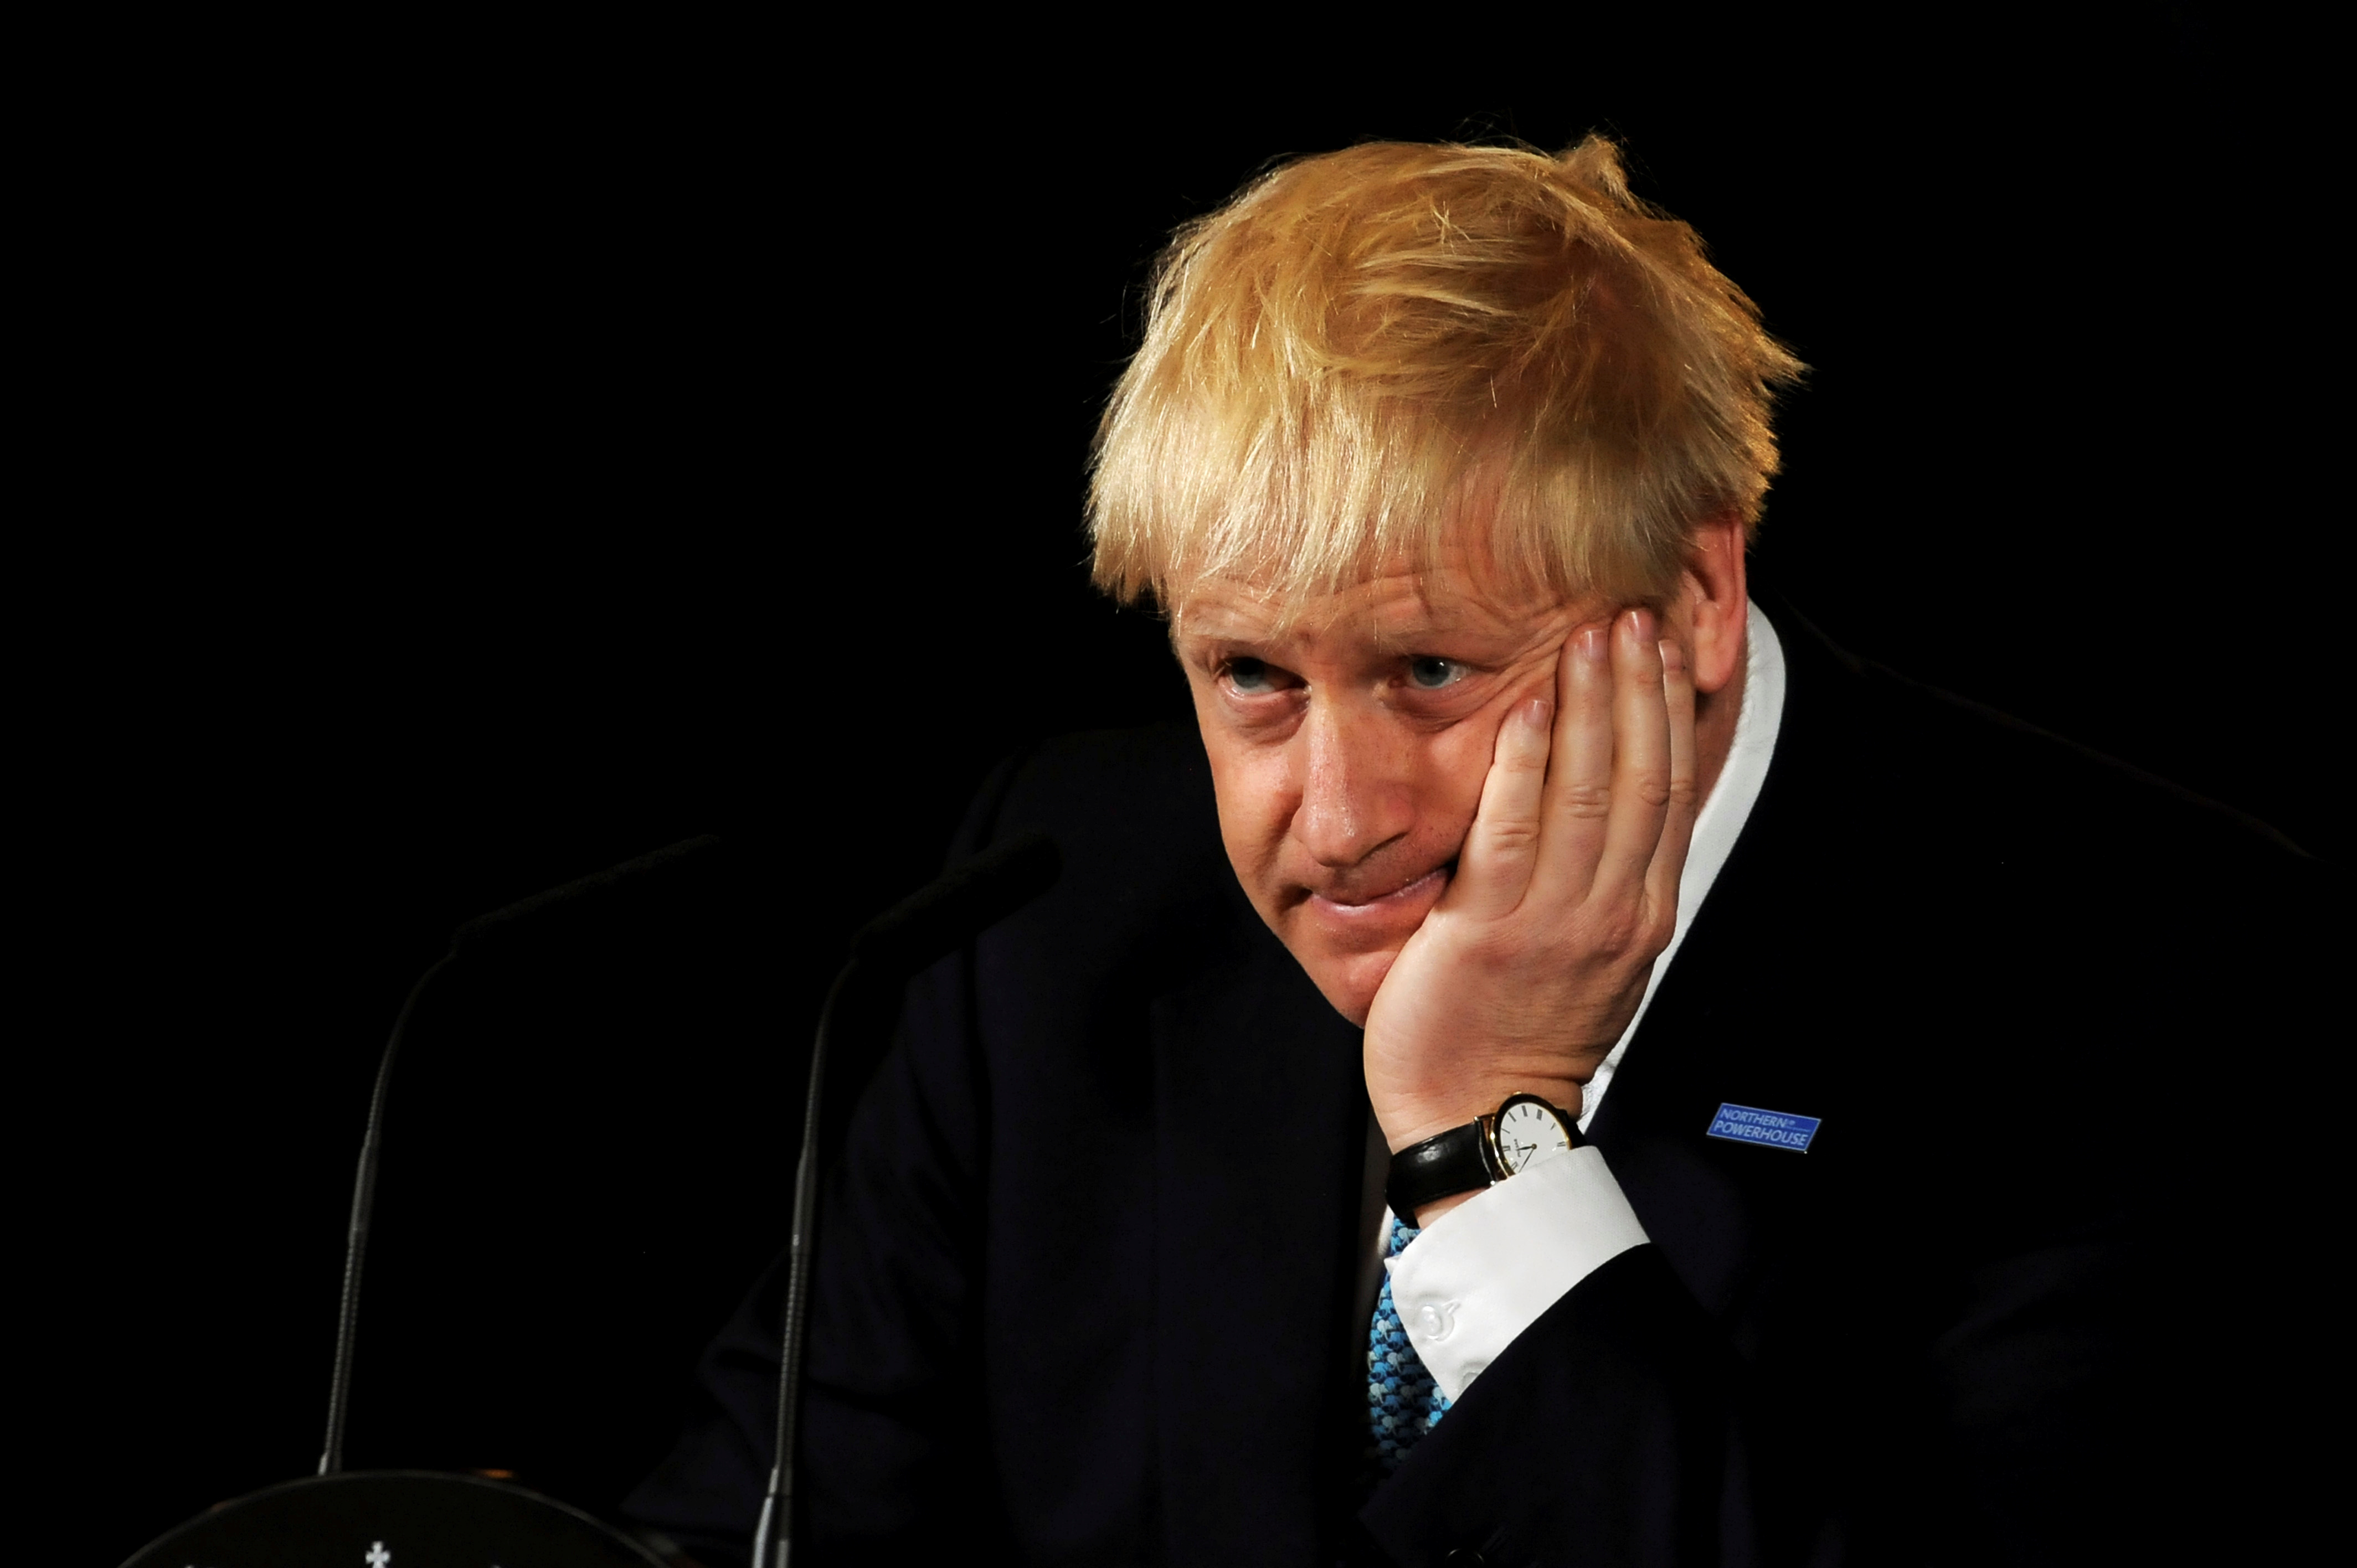 Britain's Prime Minister Boris Johnson reacts during a speech on domestic priorities at the Science and Industry Museum in Manchester, Britain July 27, 2019. Rui Vieira/Pool via REUTERS